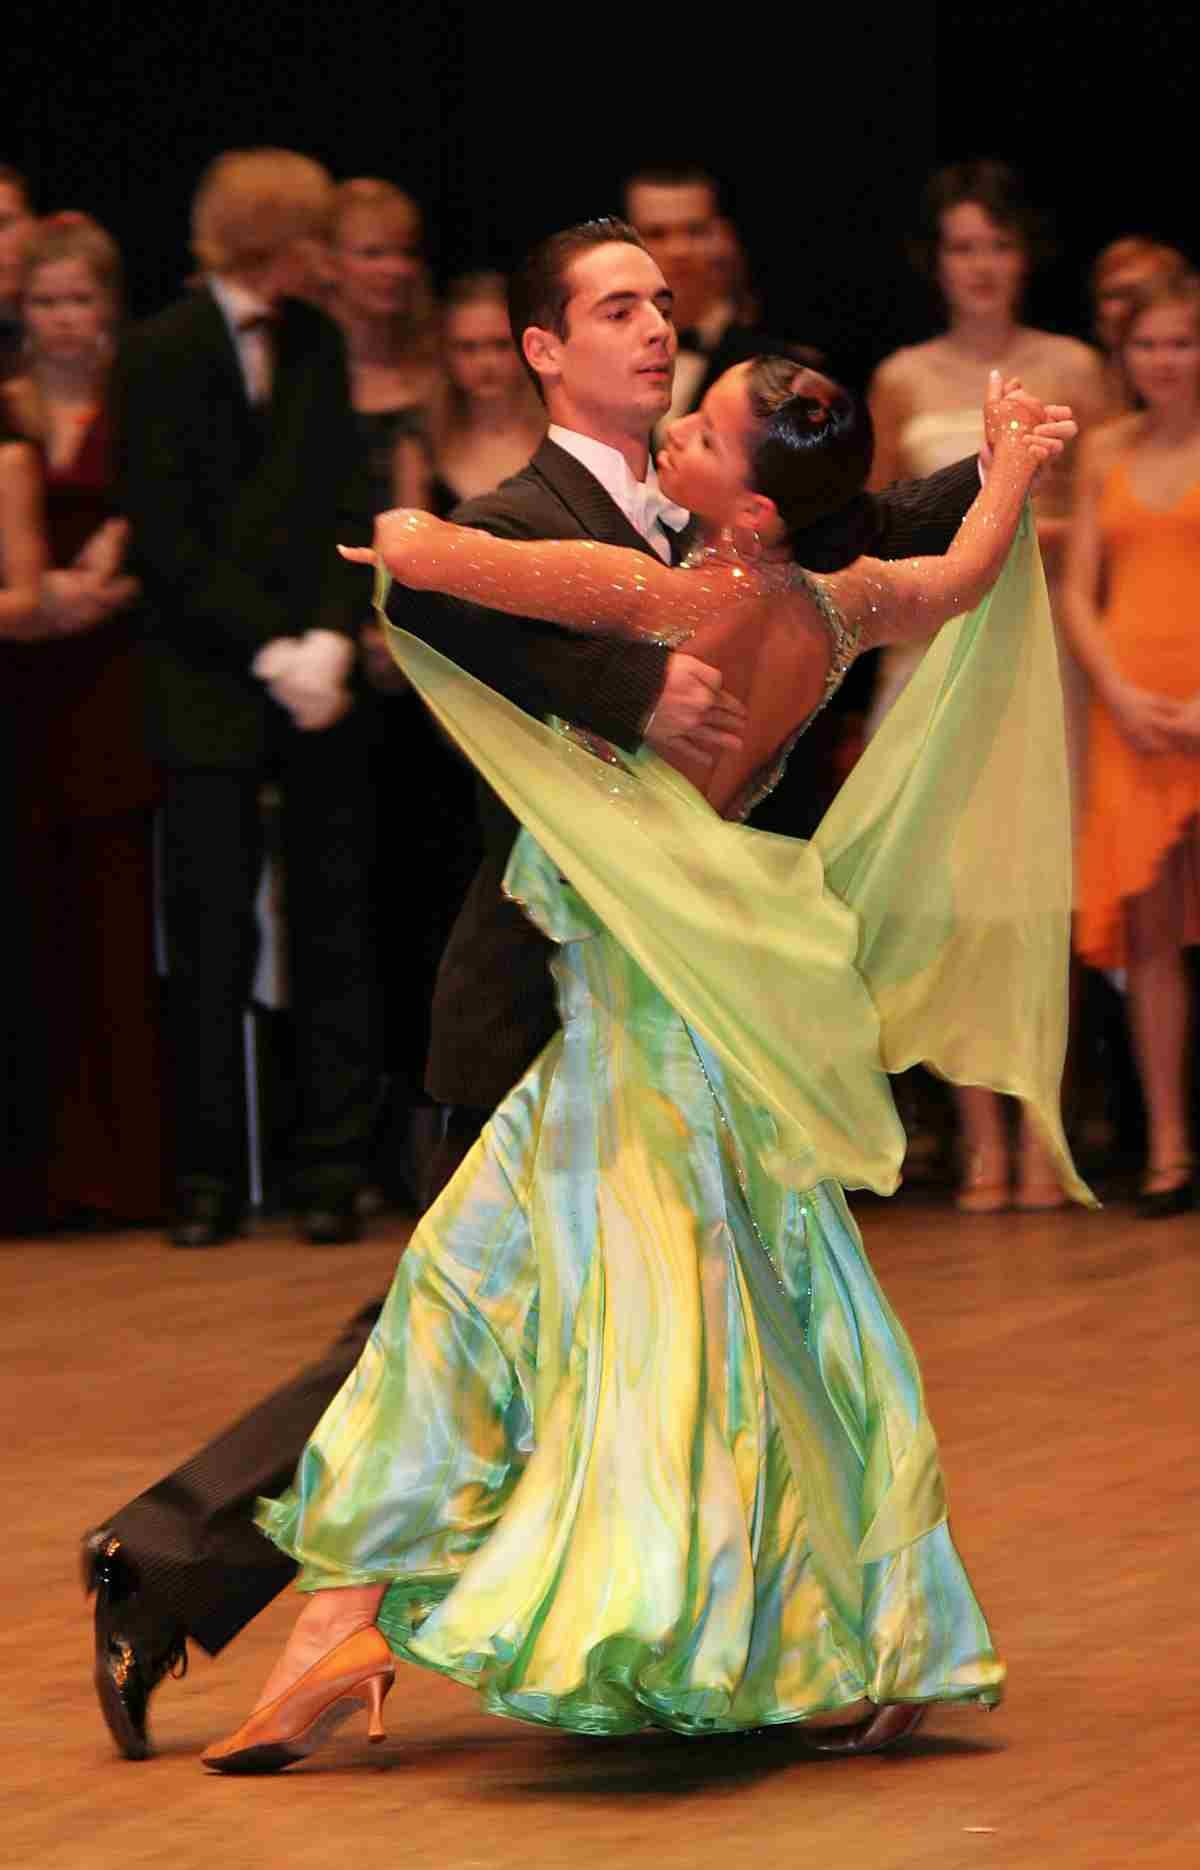 Vestidos Baile Salon International Ballroom Dance Syllabus Ballroom Baile